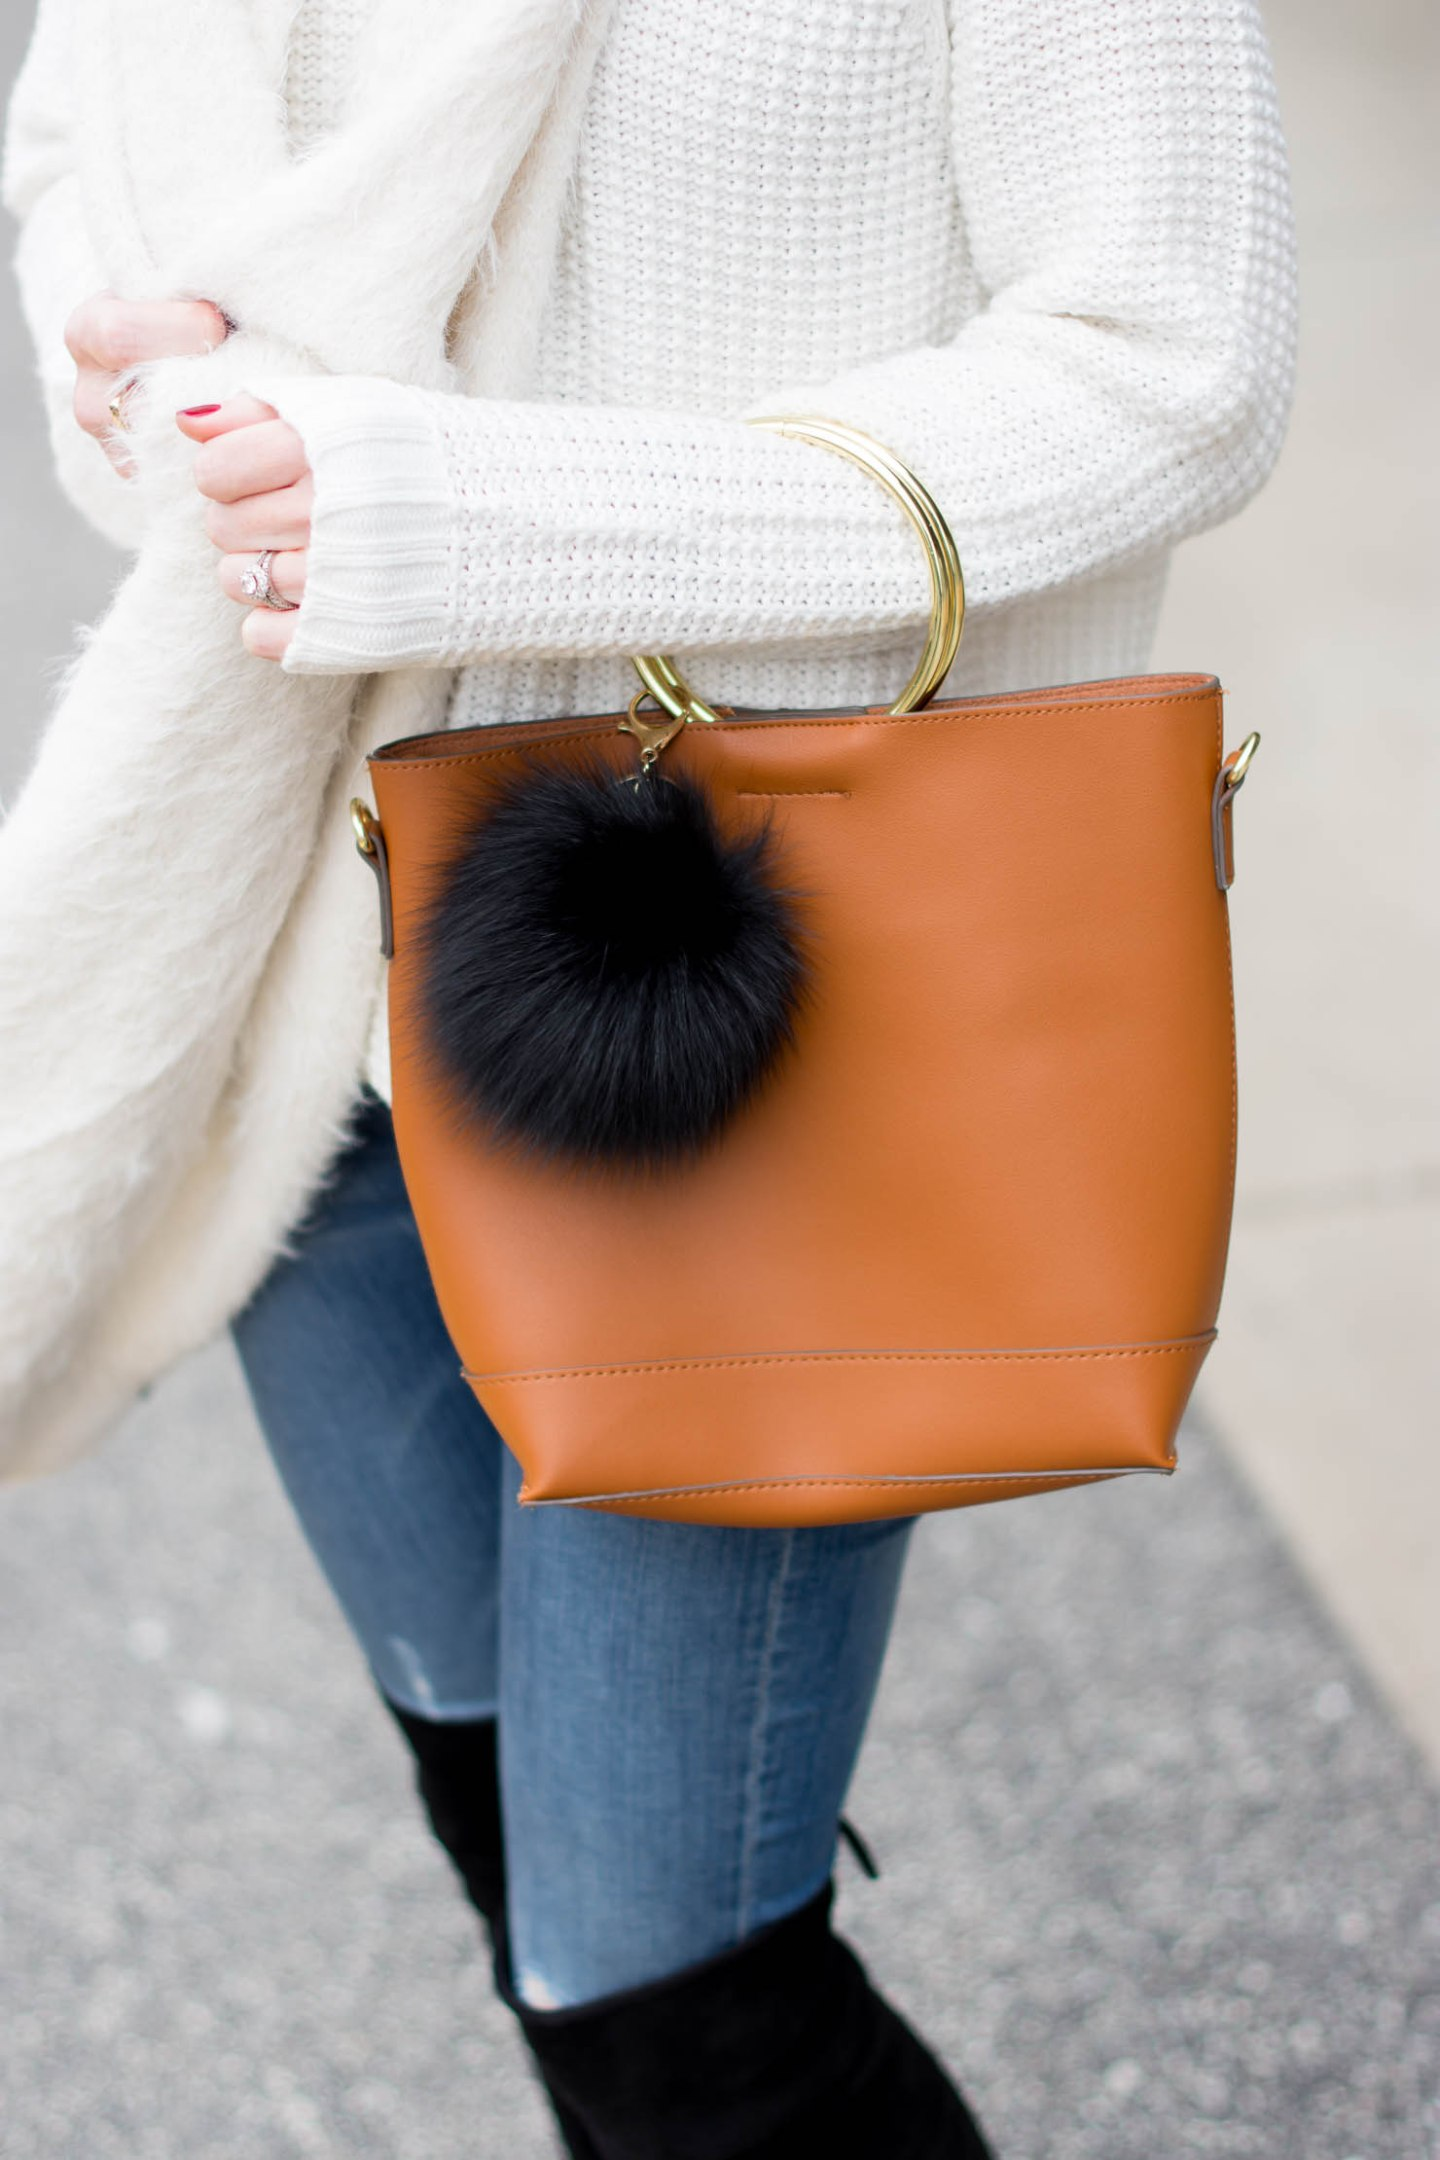 cozy accessories to gift this holiday season, shopko fashion, the coziest under $20 scarf, ring handle bag with fur charm, winter fashion, holiday 2017